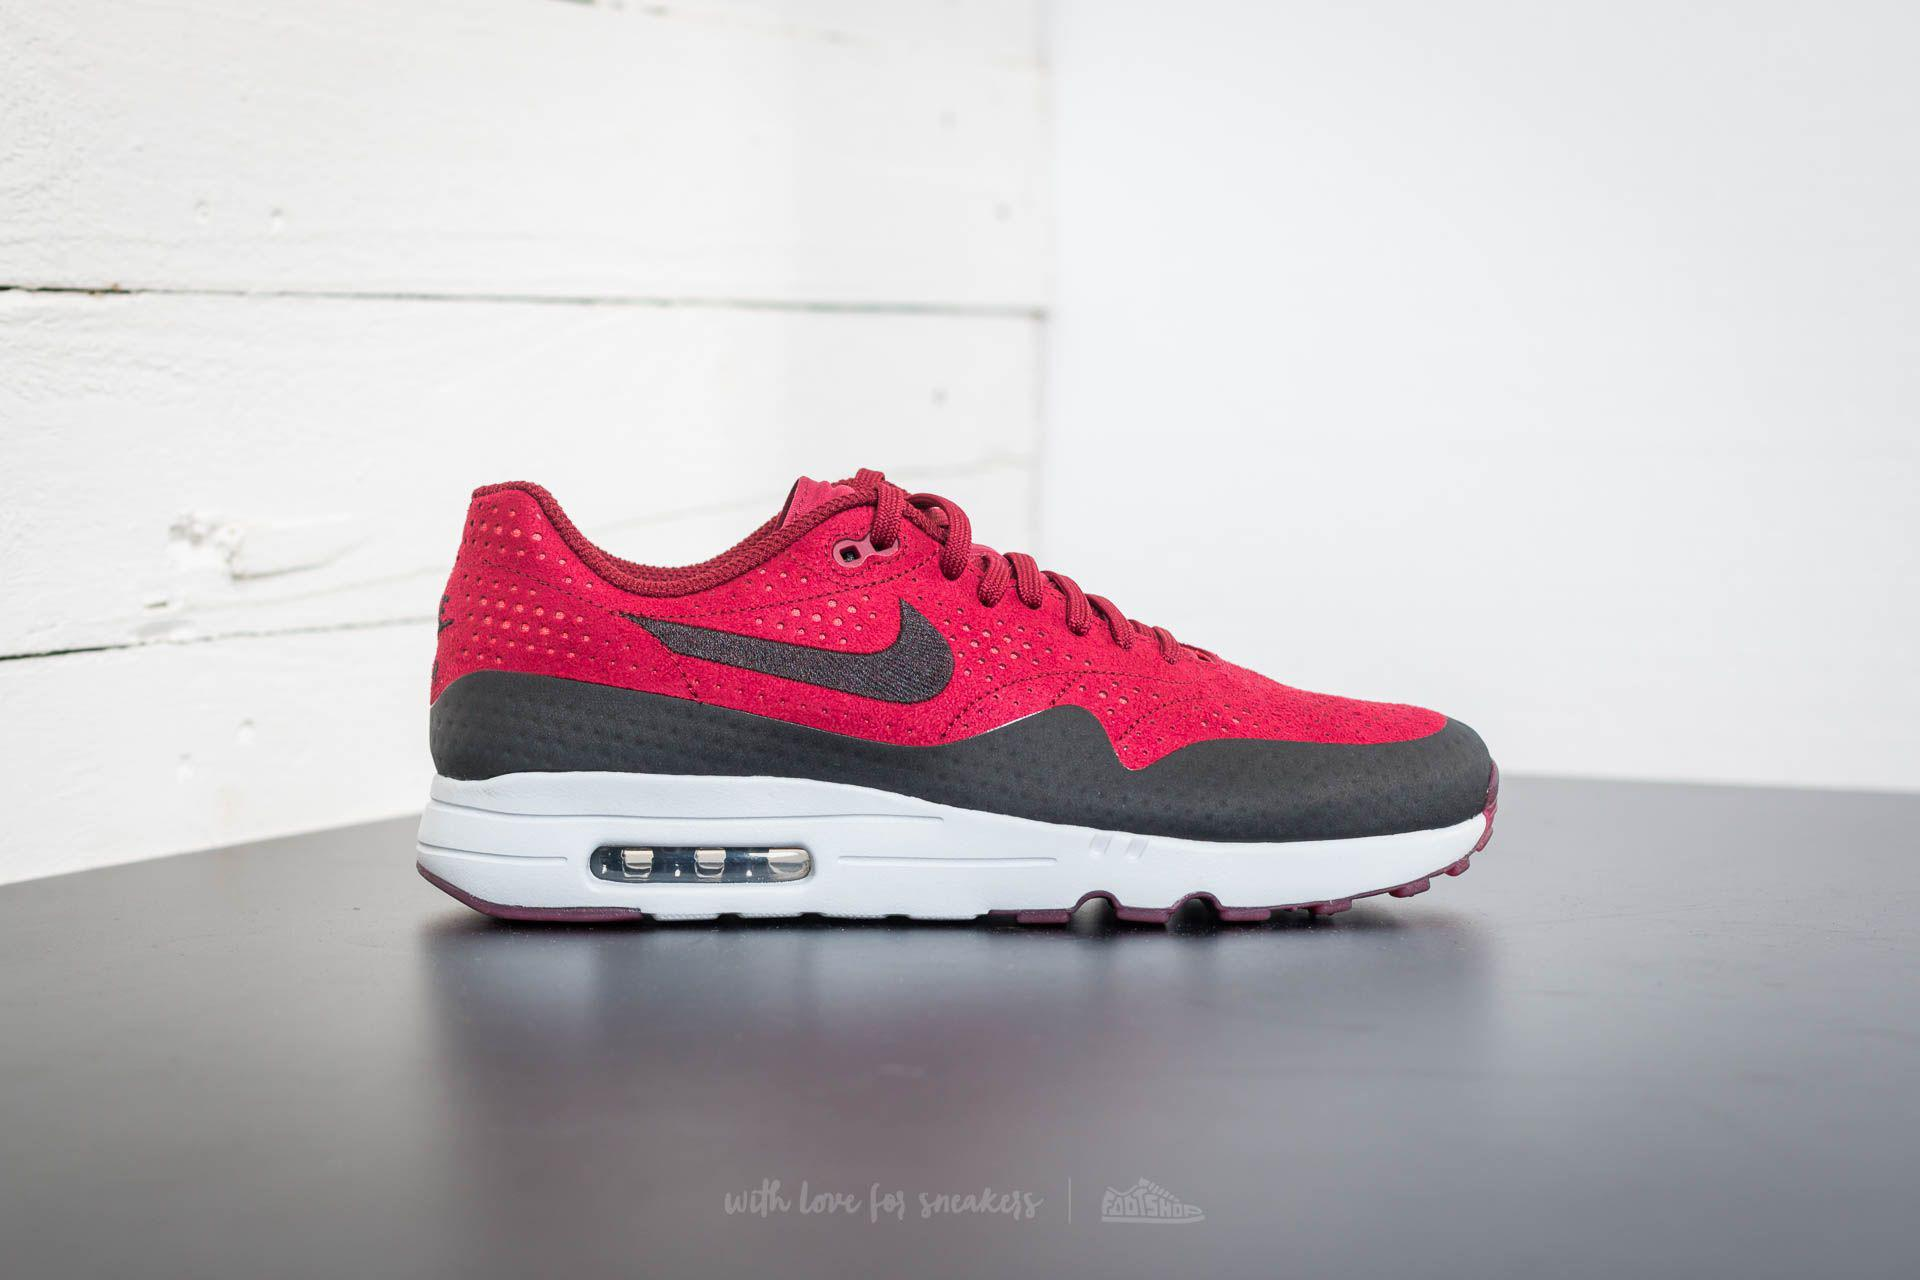 6a033372671fae ... 50% off lyst nike air max 1 ultra 2.0 moire team red black solar red